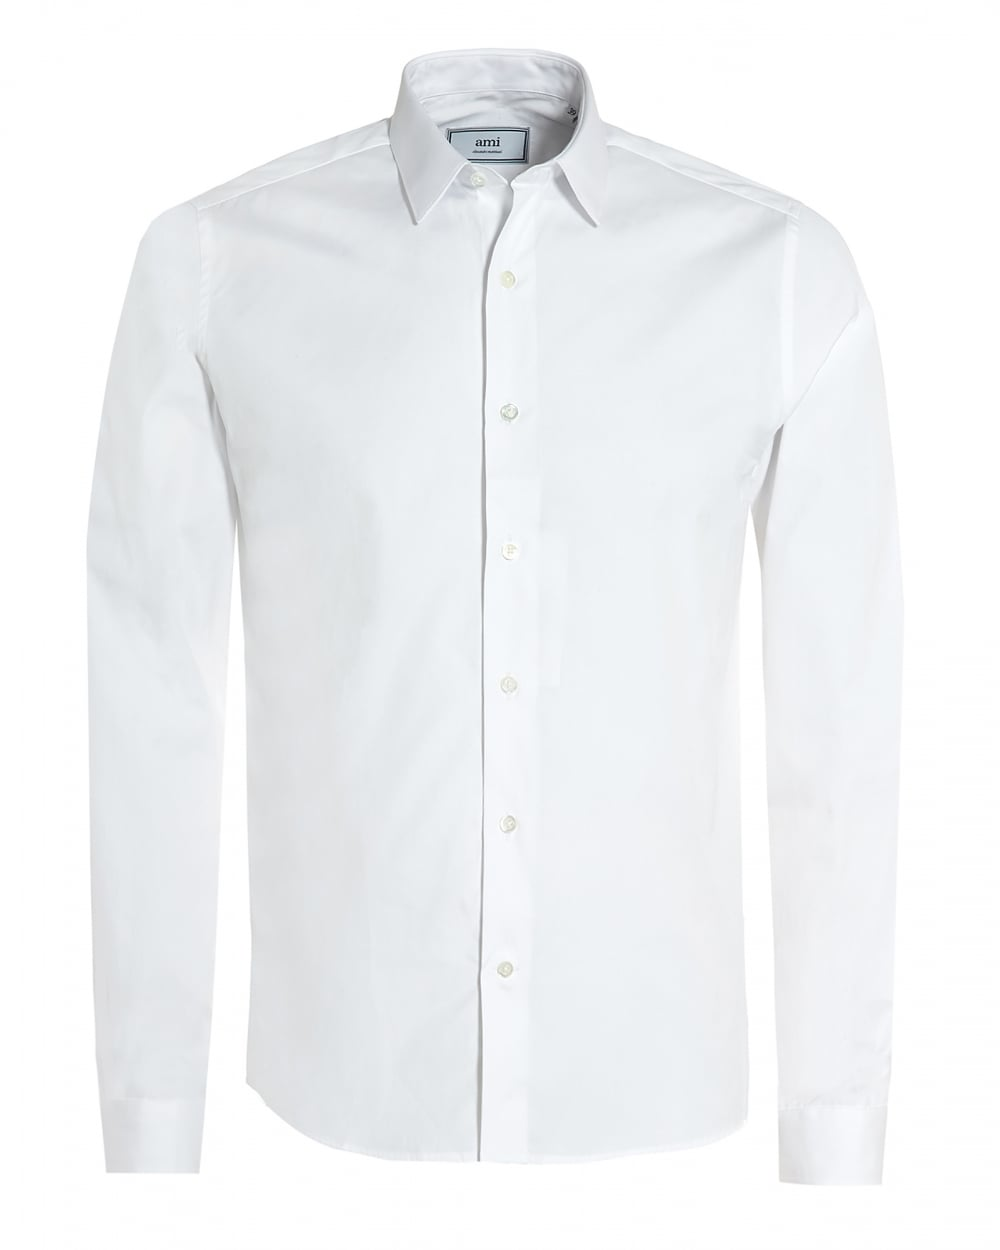 99c0849c62eb Ami Mens Plain White Cotton Shirt, Regular Fit Formal Shirt